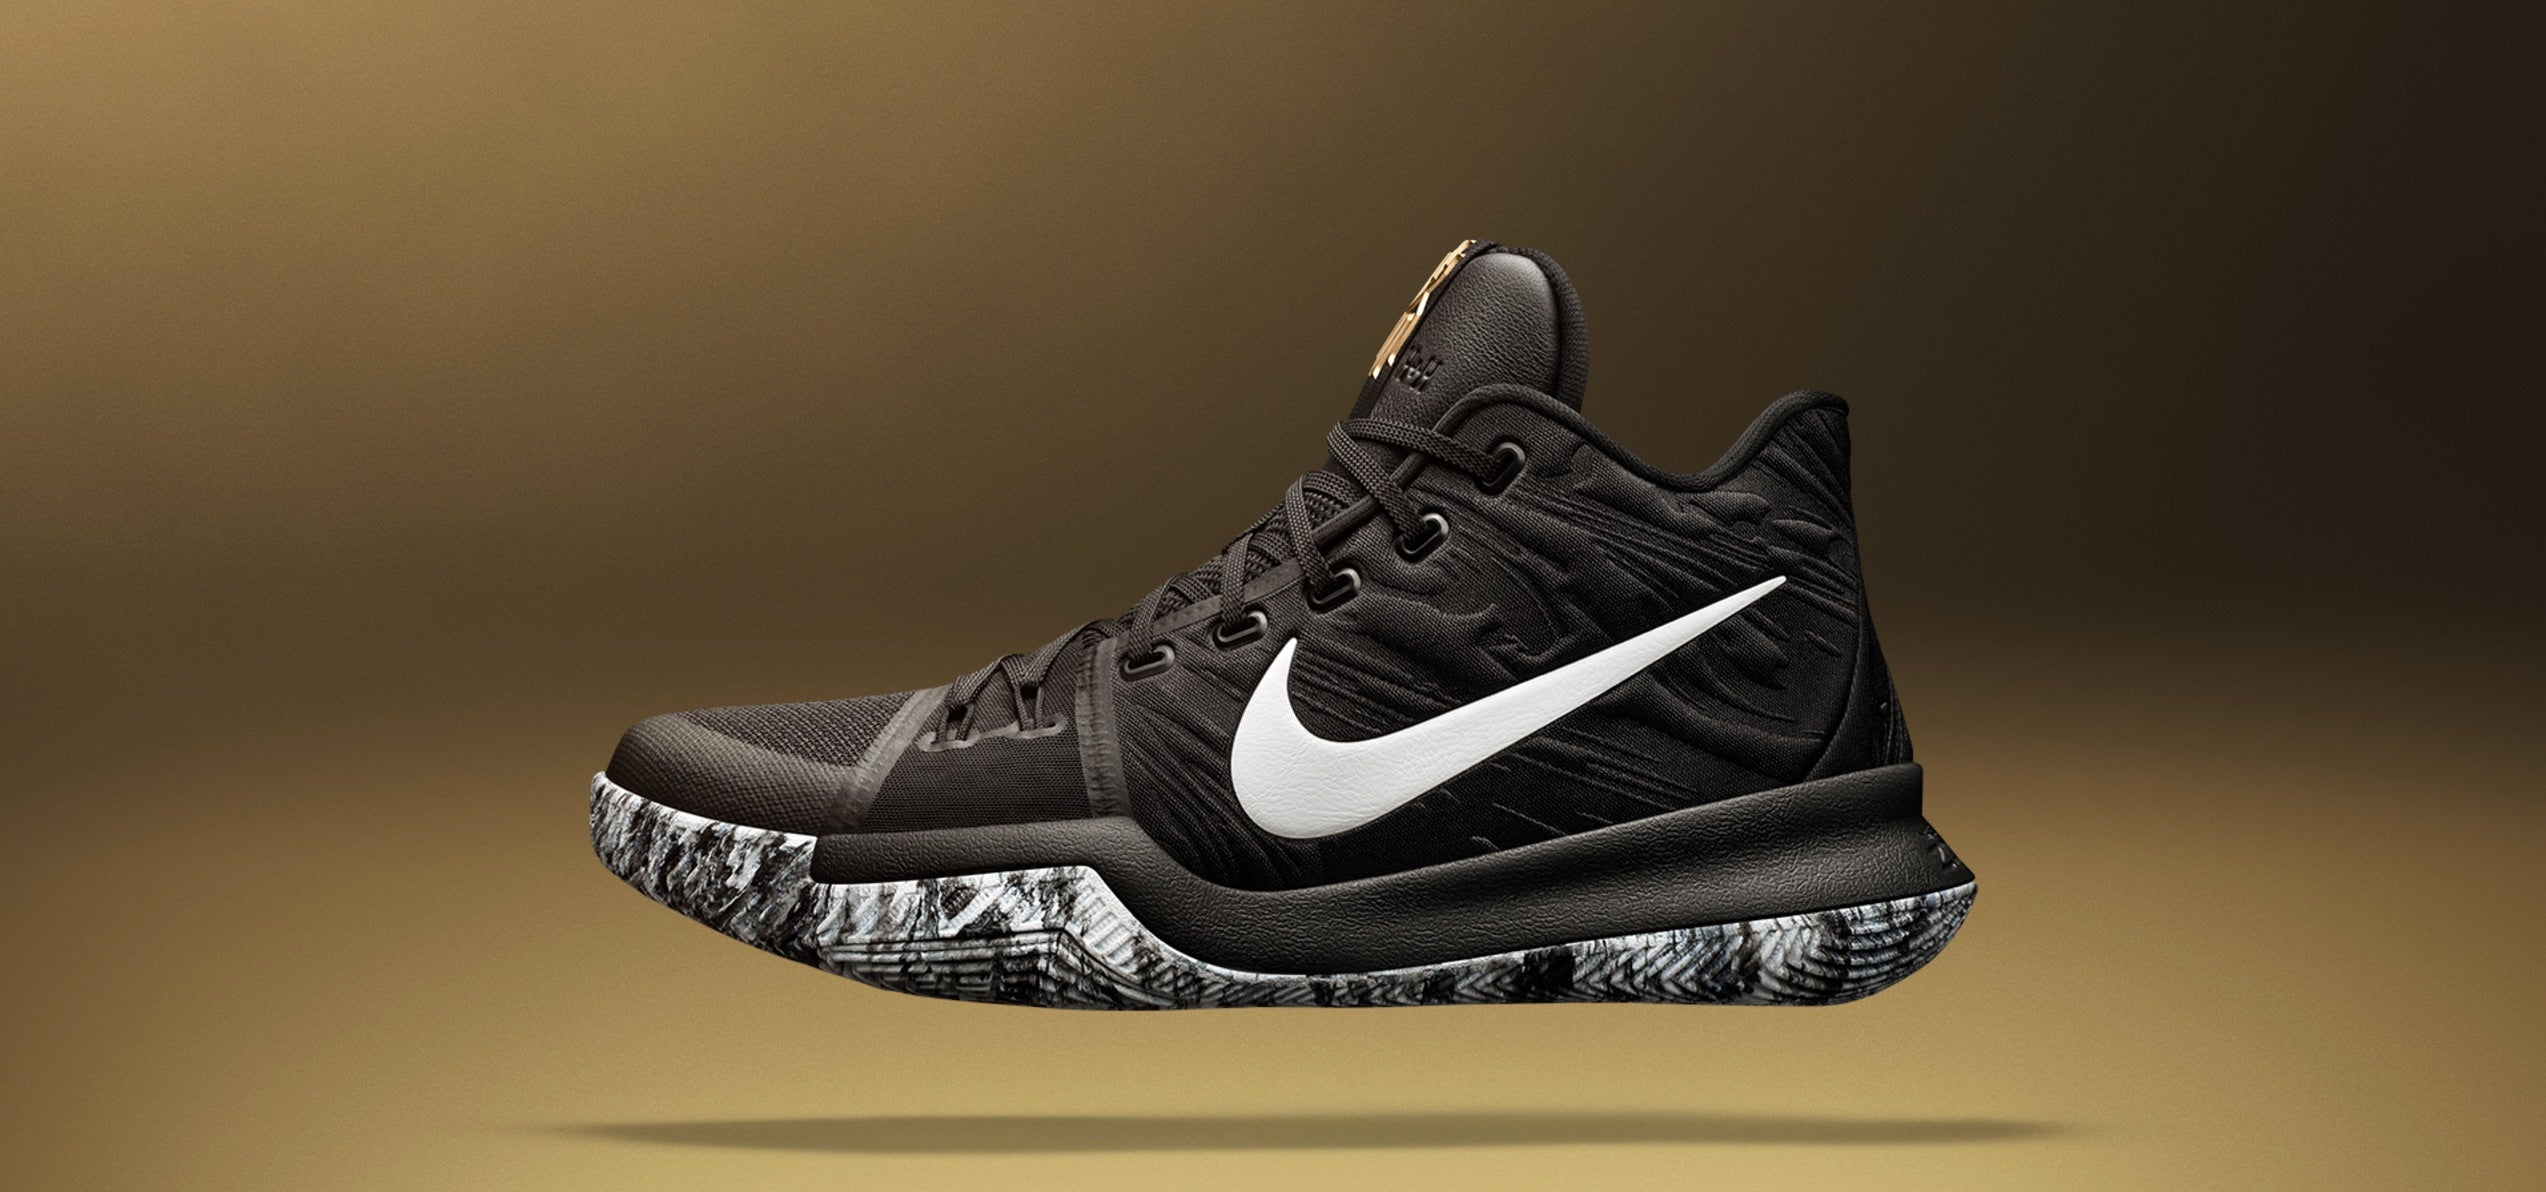 size 40 6d7dc 8225d Accompanied with the gold accents on the tongue, the black and white  splattered outsole conveys the prideful look associated with Black History  Month.